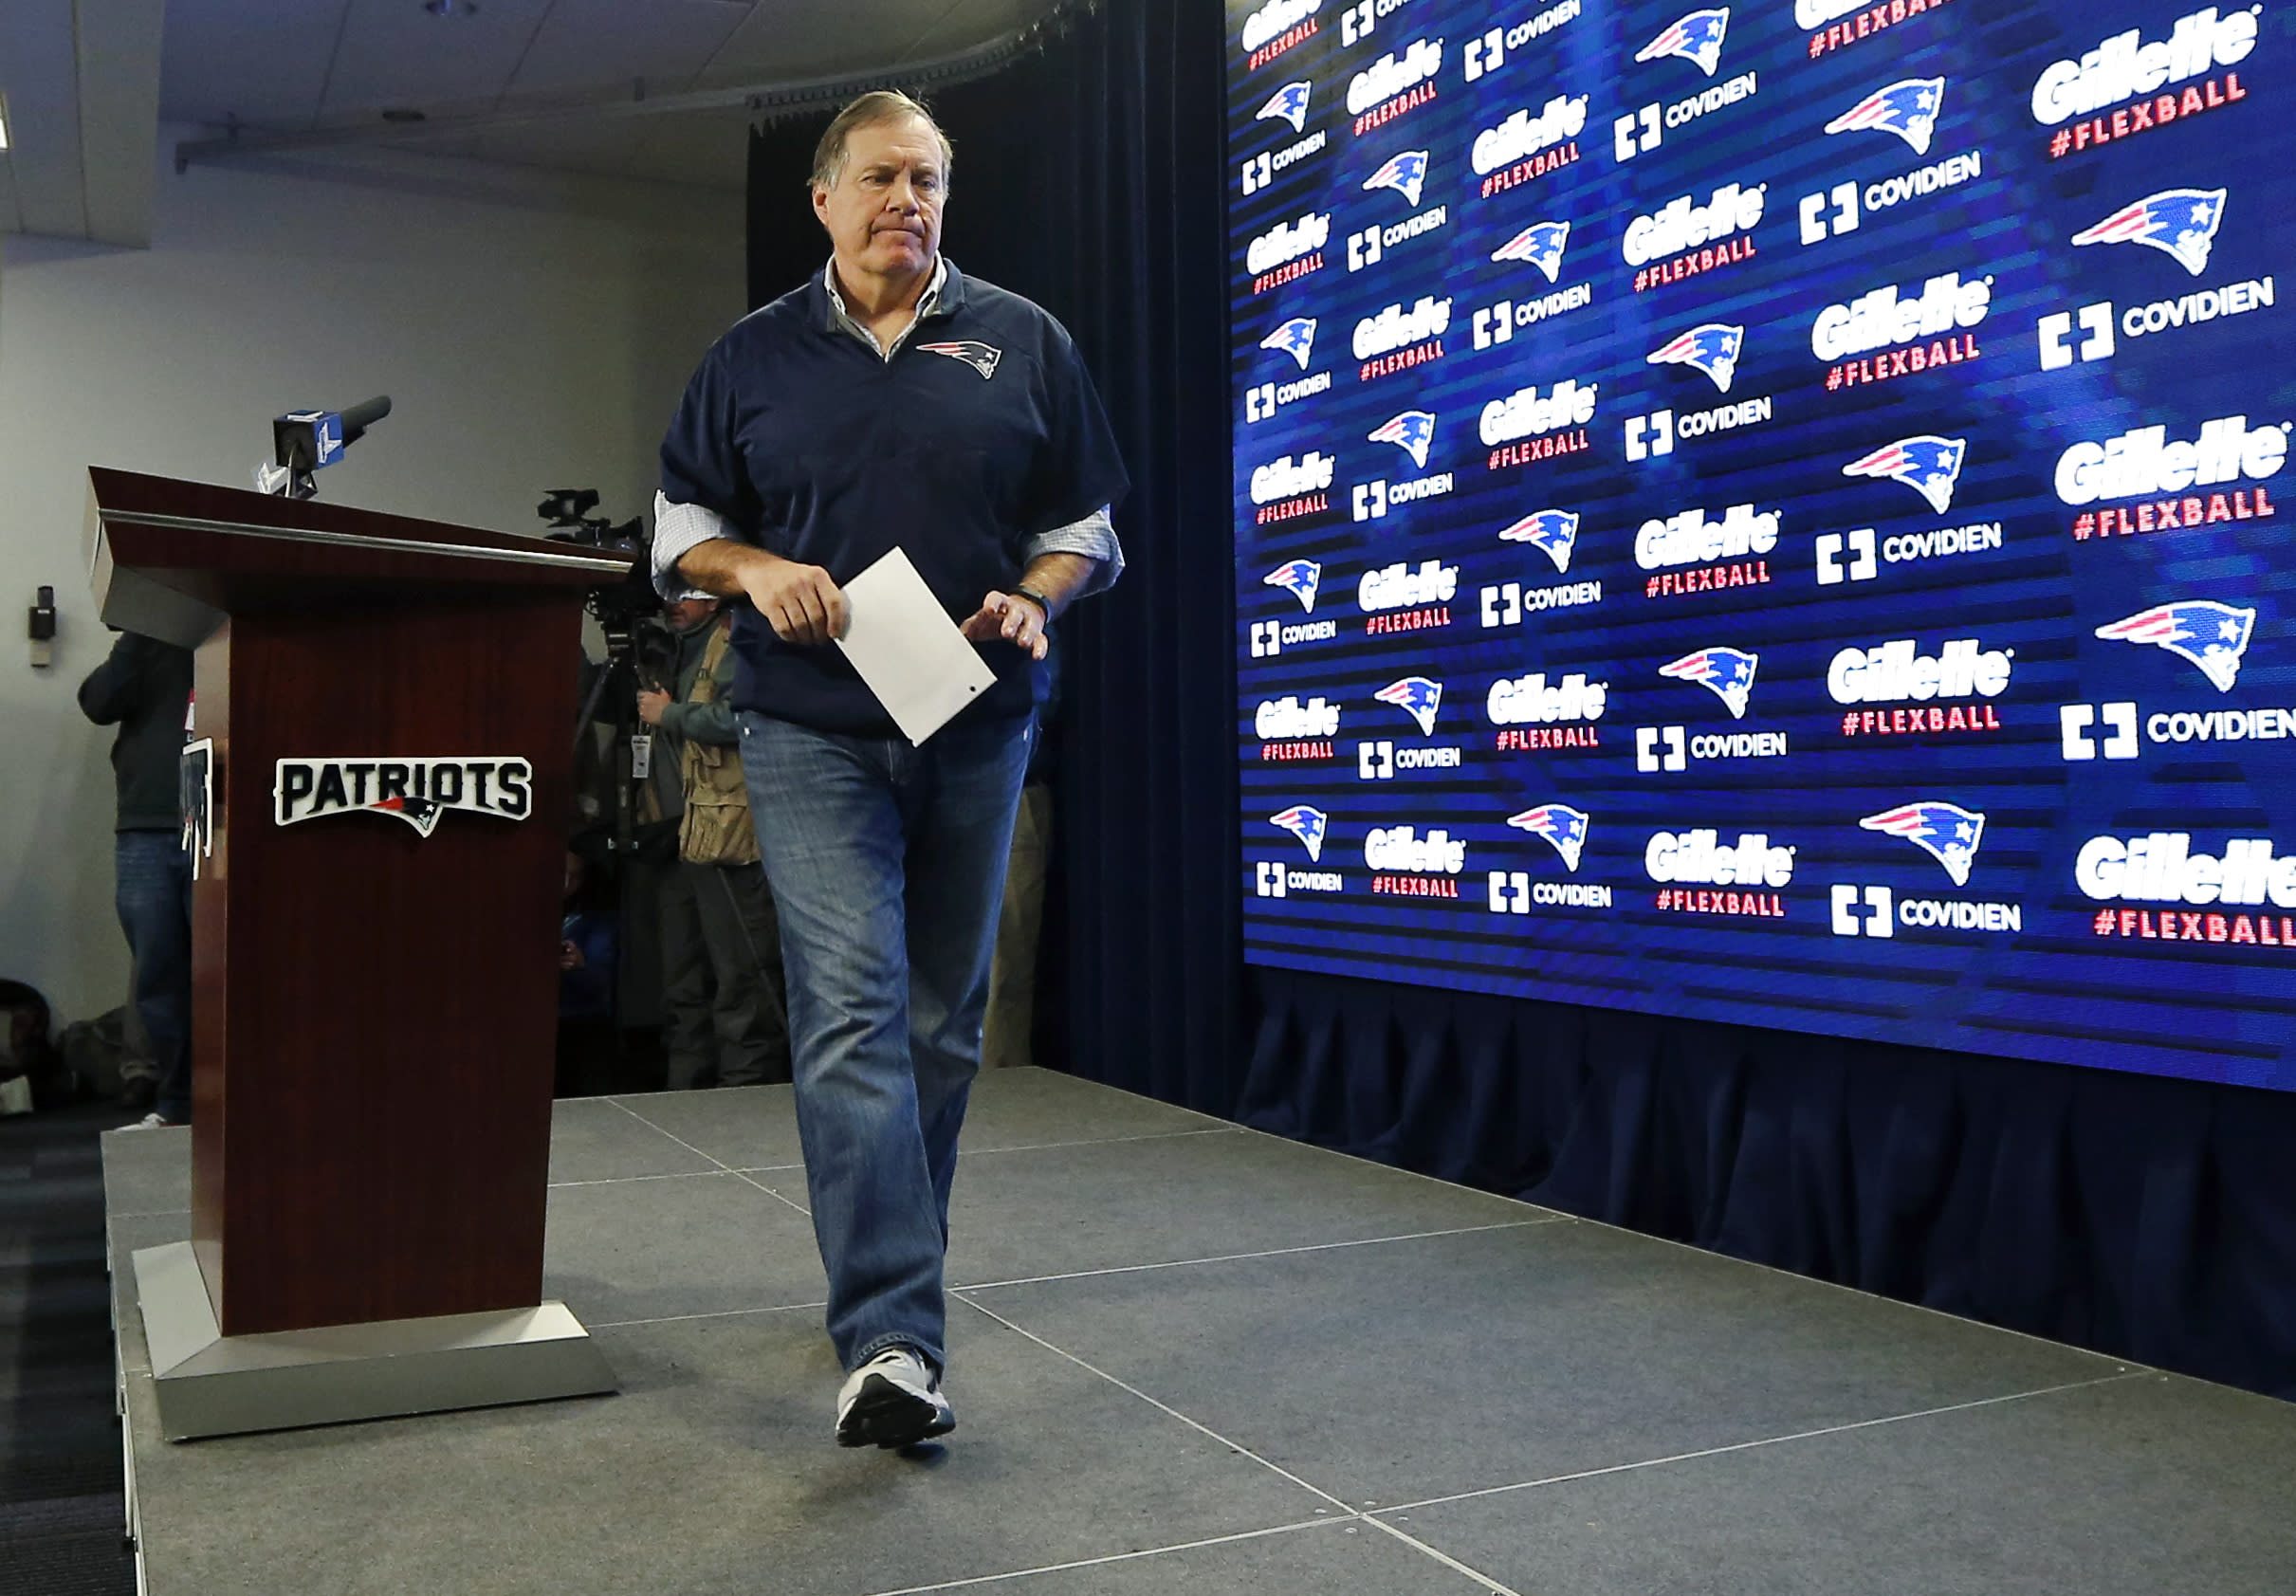 Column: Deflategate should keep Belichick out of Super Bowl